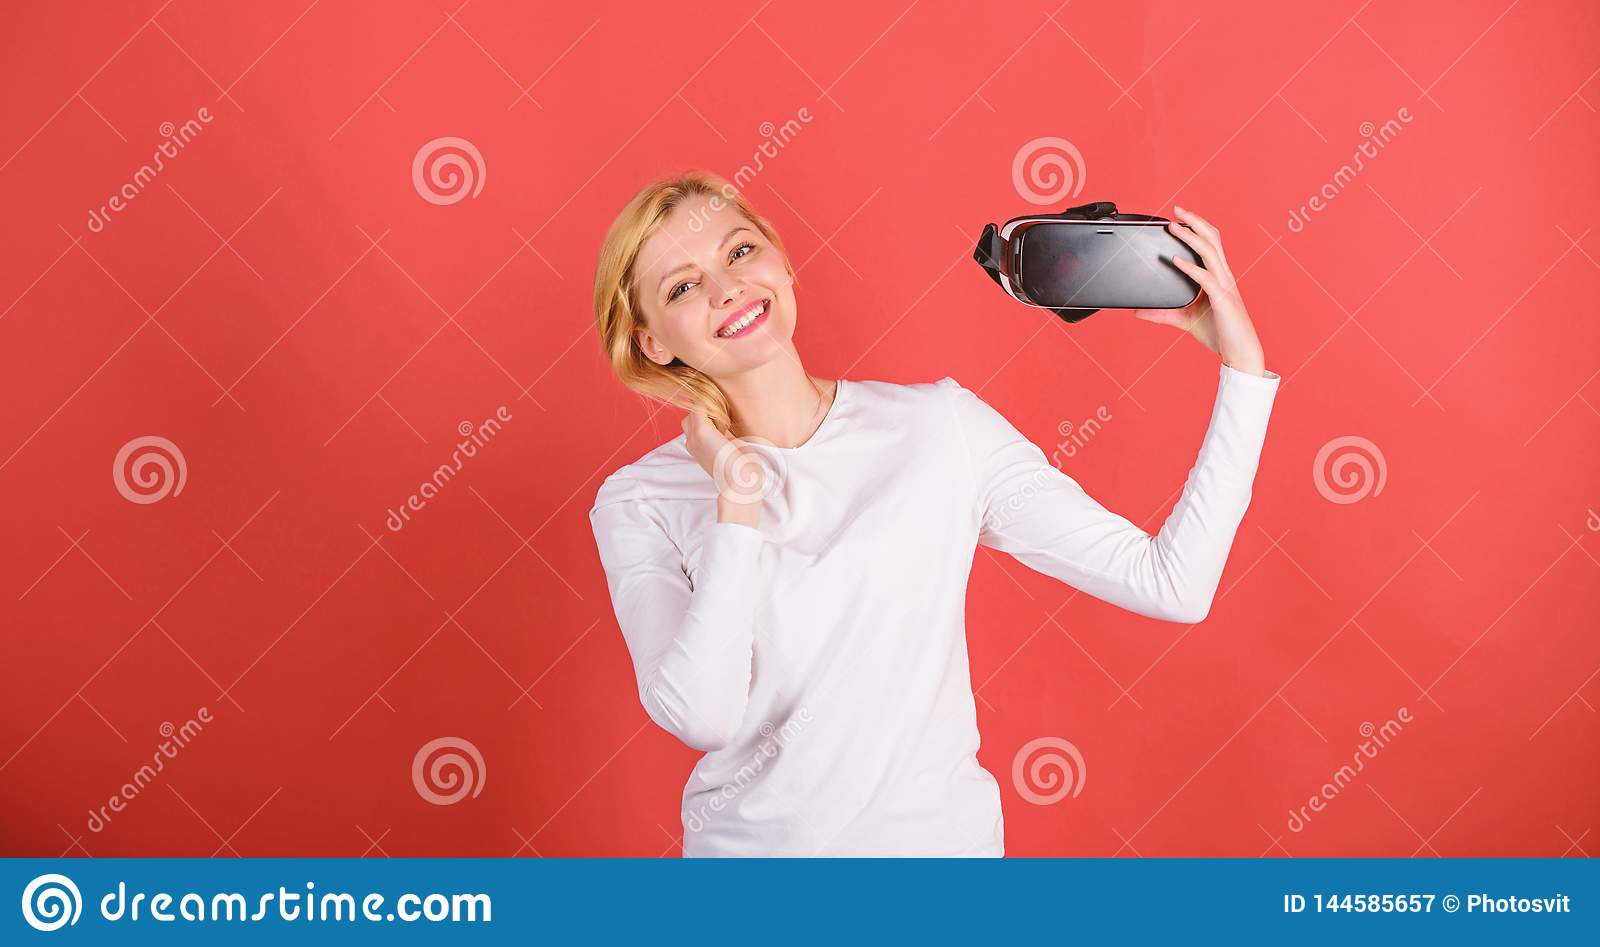 A person in virtual glasses flies in room space. Happy woman exploring augmented world, interacting with digital